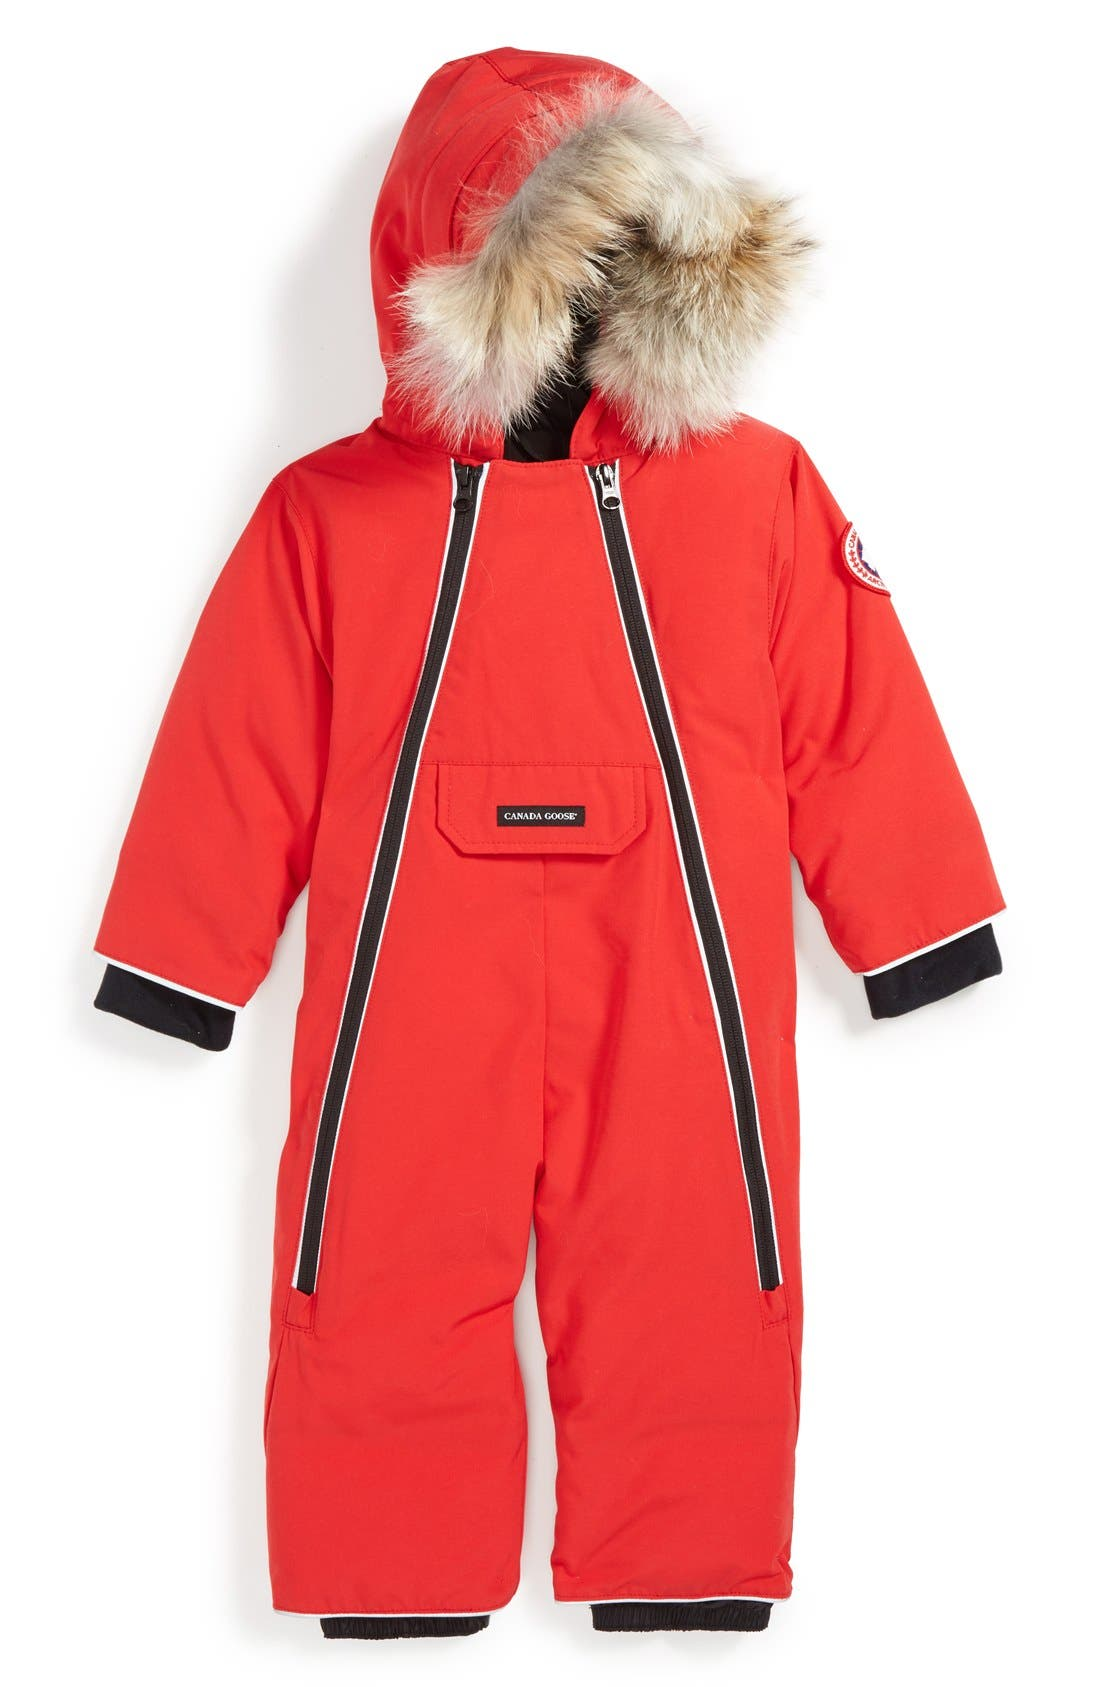 Alternate Image 1 Selected - Canada Goose 'Lamb' Down Snowsuit with Genuine Coyote Fur Trim (Baby Girls)